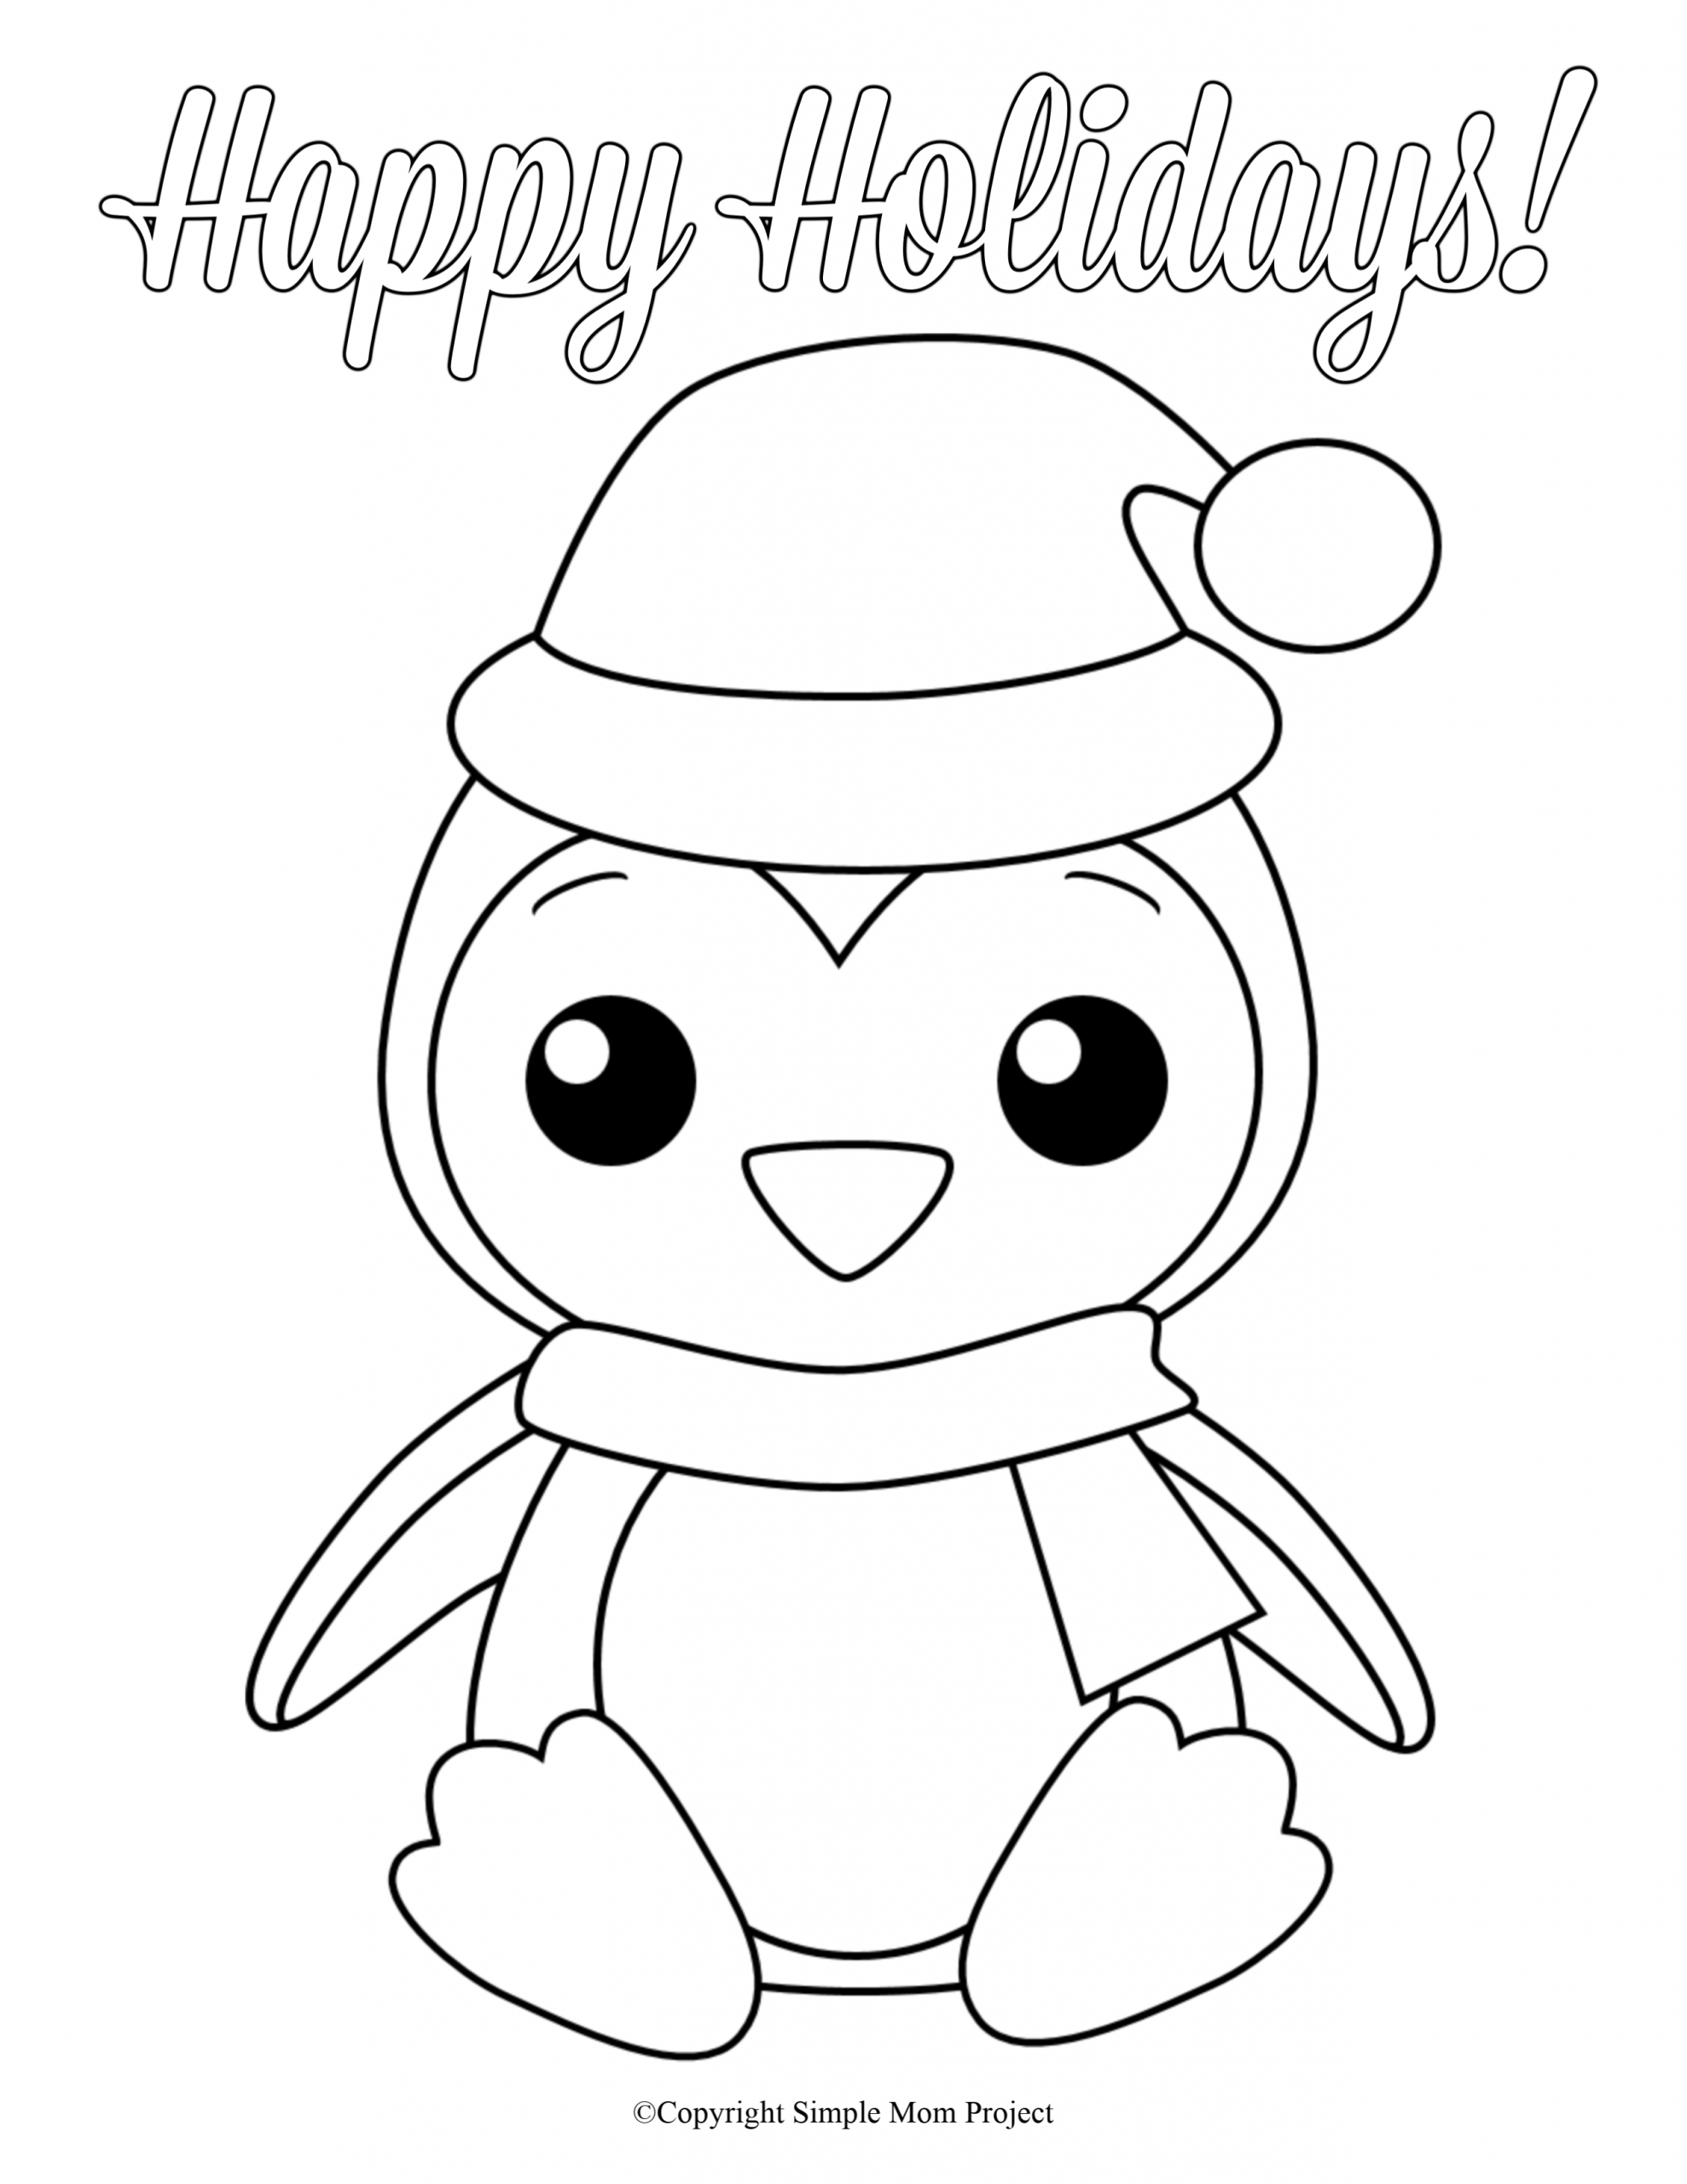 Santa S Lists Christmas Coloring Pages For Kids Christmas Coloring Sheets Christmas Coloring Pages Christmas Coloring Sheets For Kids